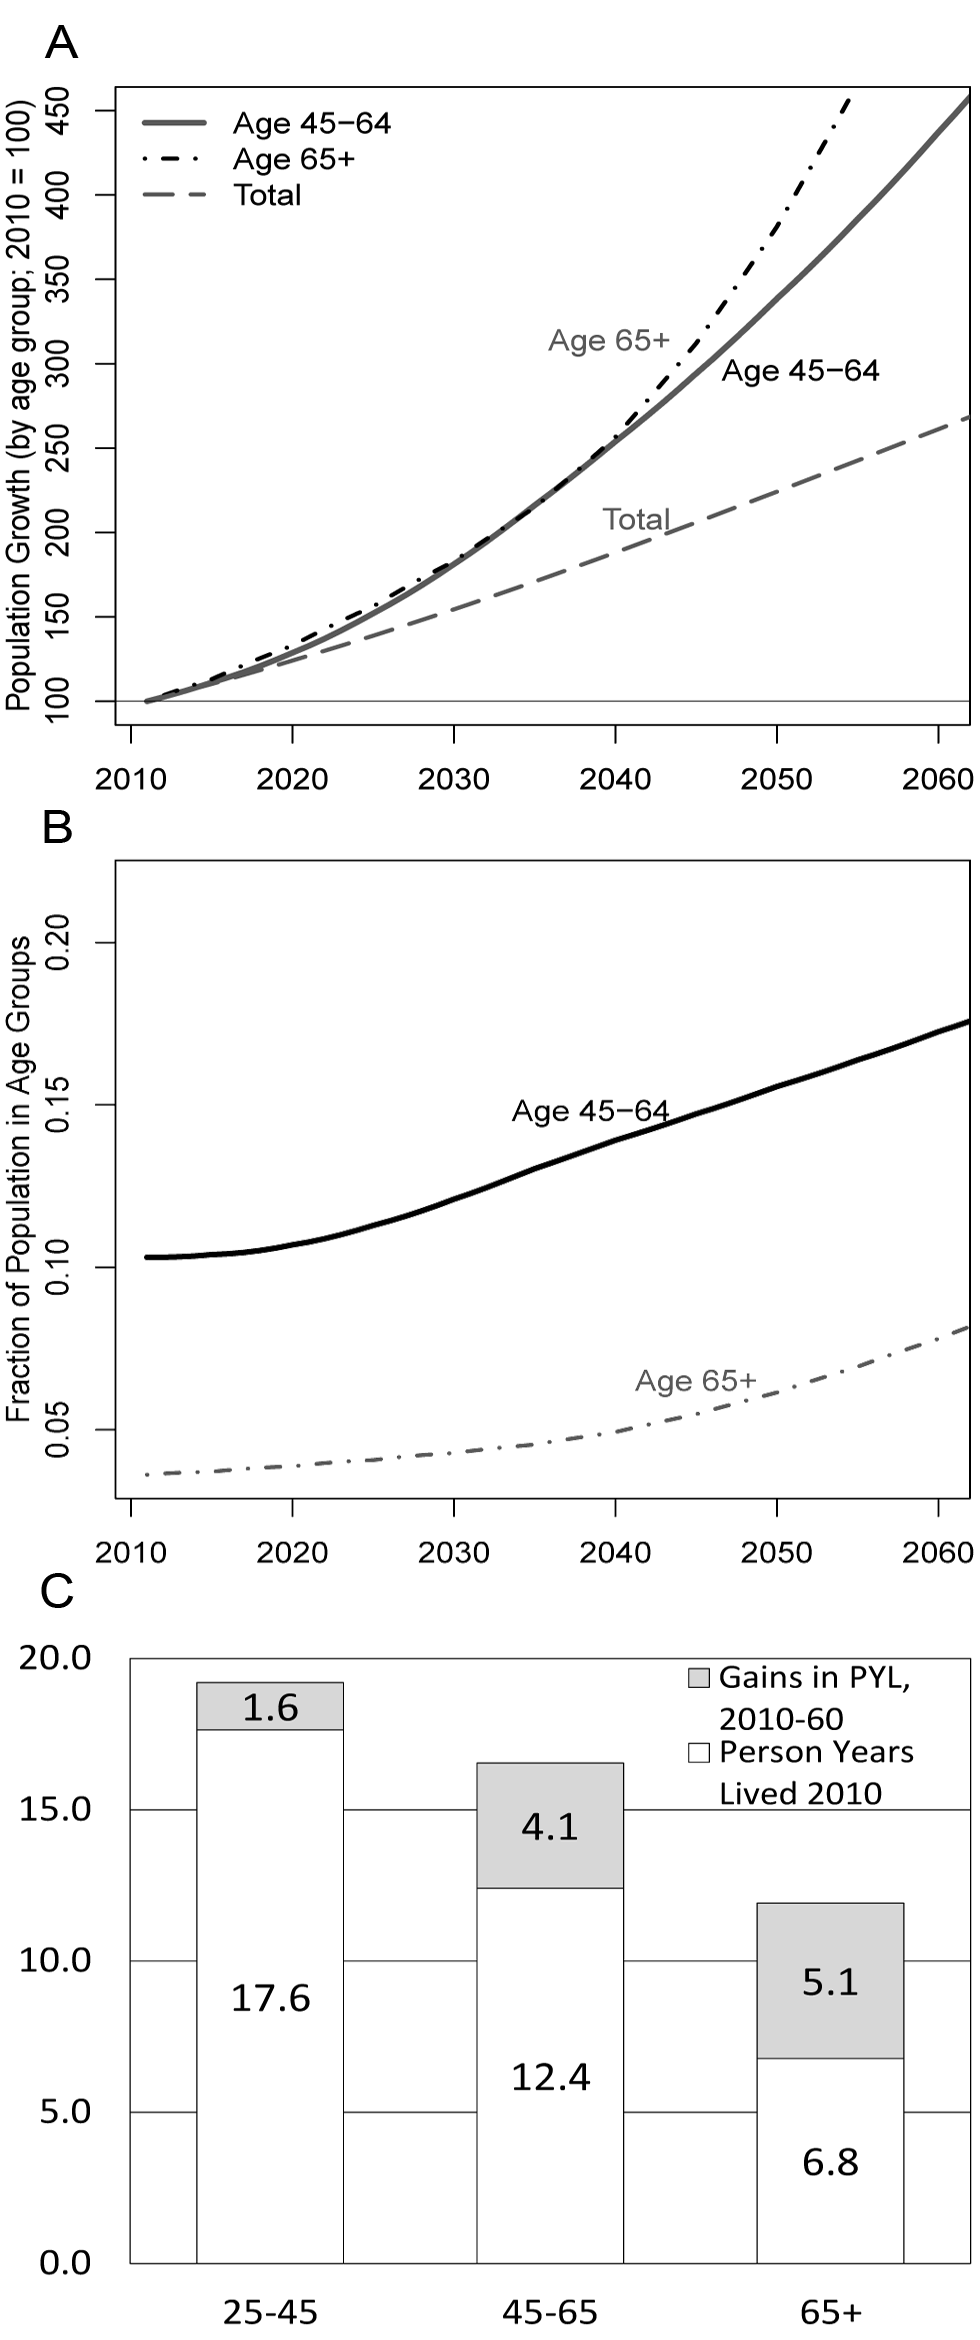 Population growth by age group in SSA 2010–2060, share of total population by age groups, and person-years lived by age group.